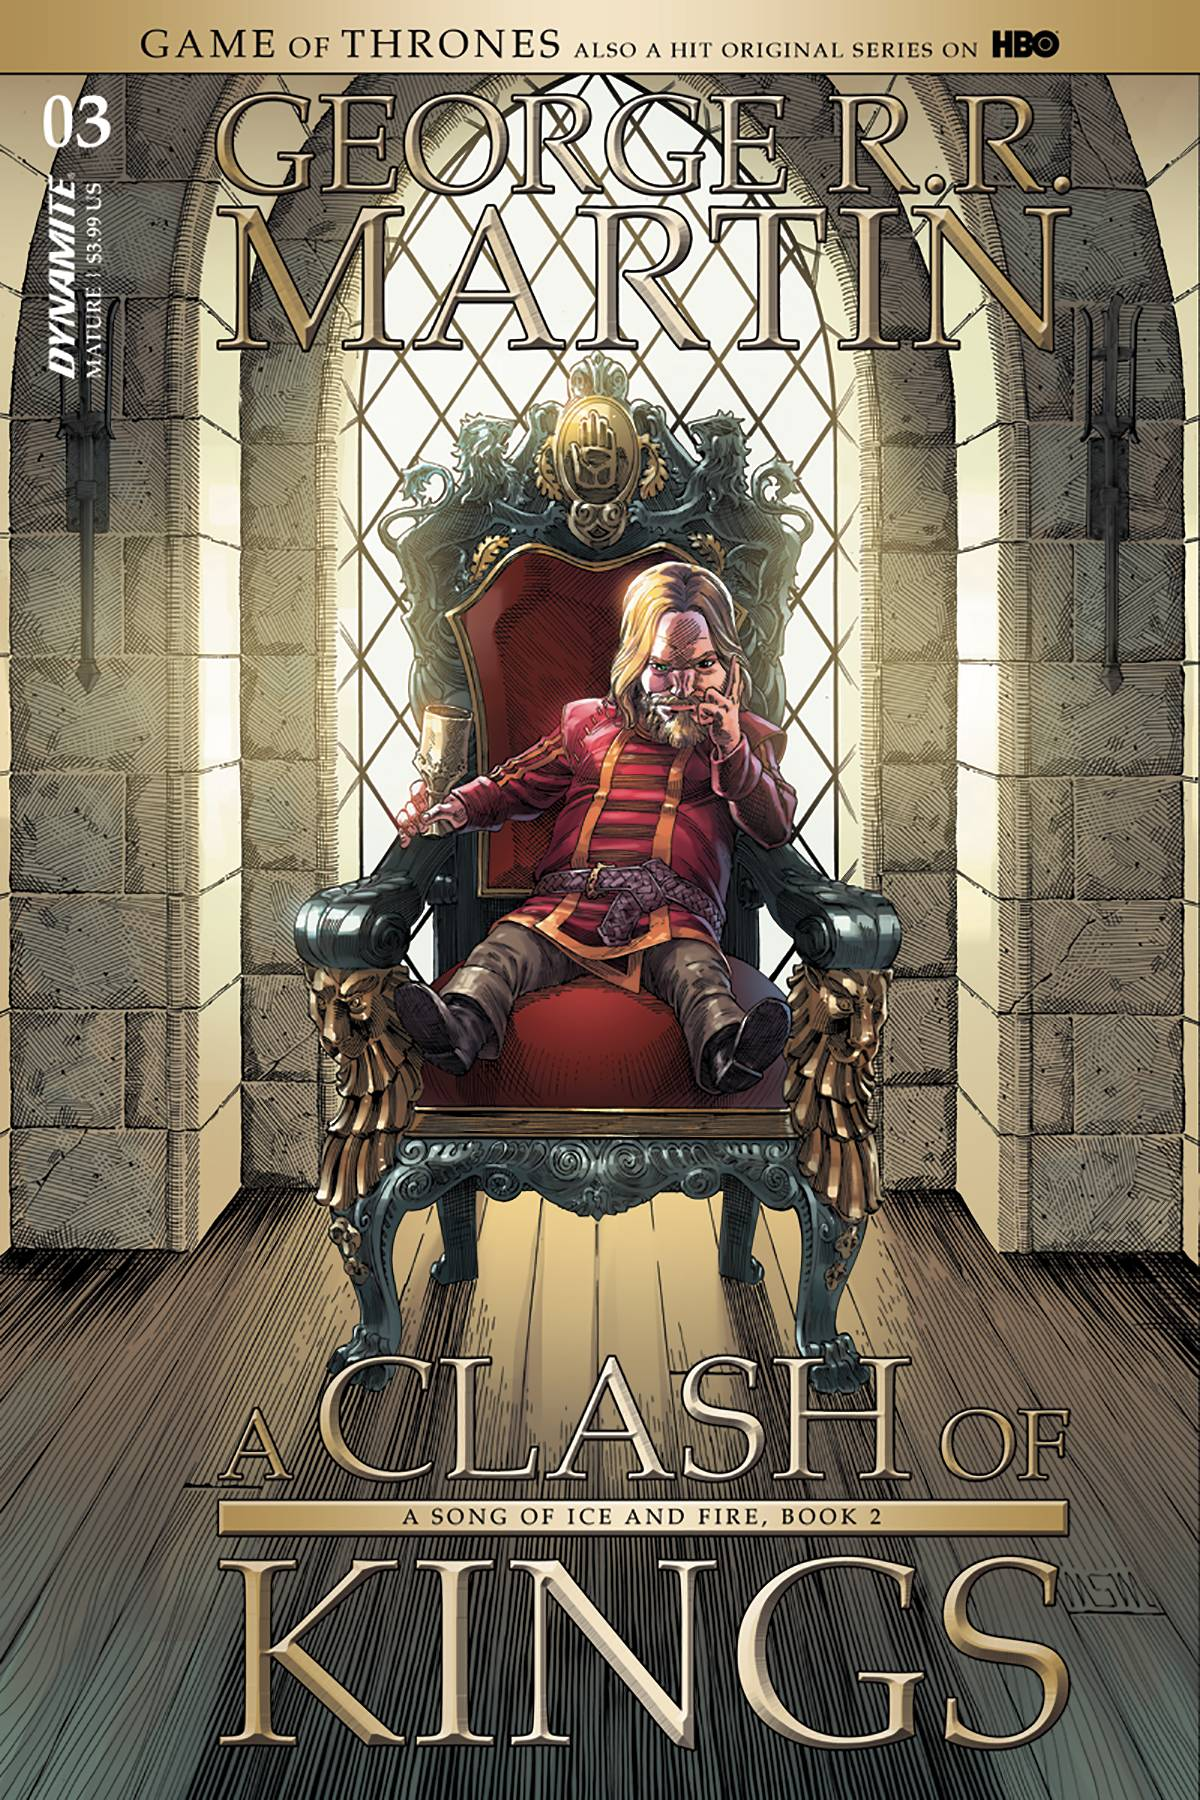 GAME OF THRONES: A CLASH OF KINGS#3